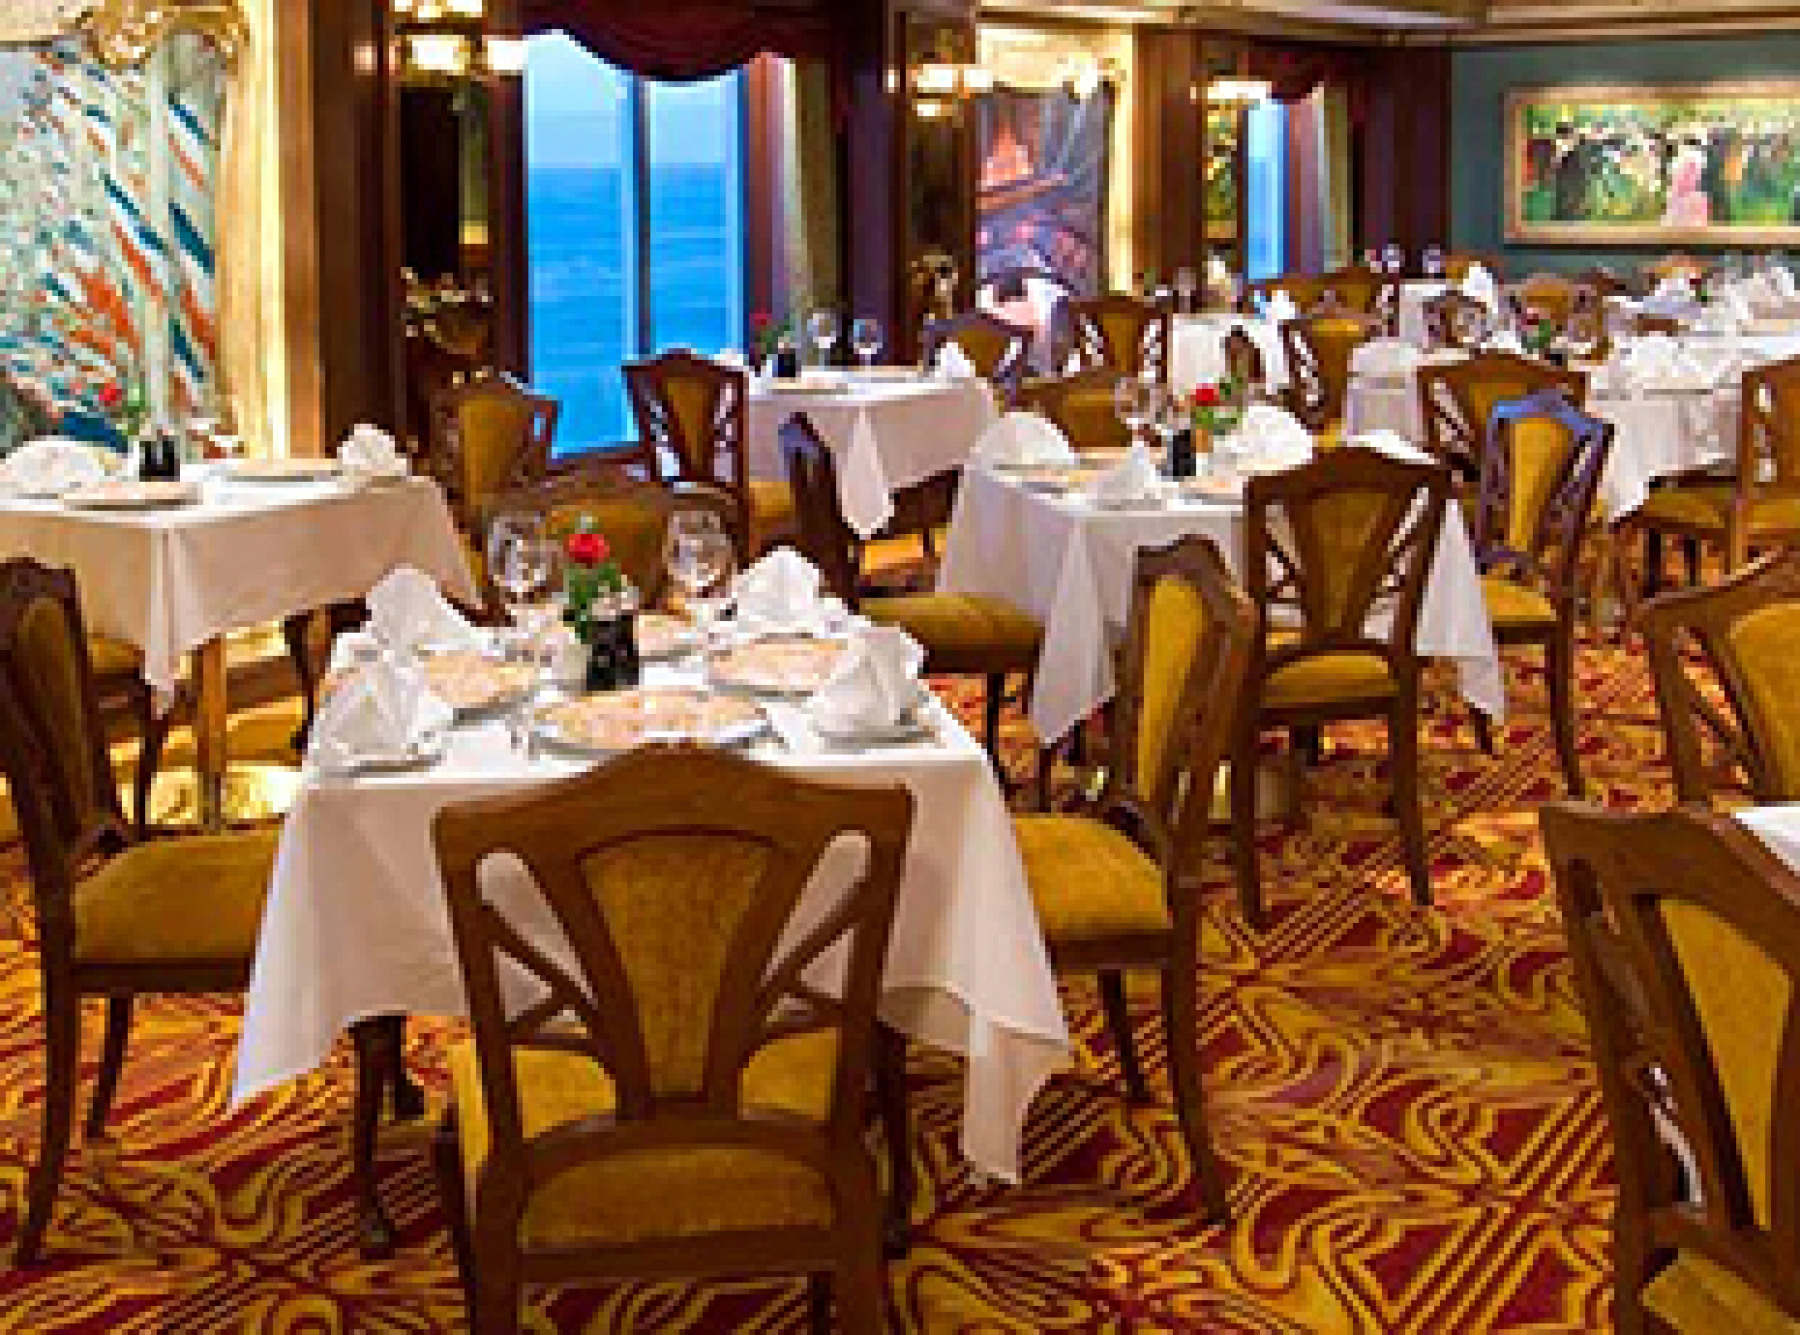 Norwegian Cruise Line Norwegian Jewel Interior Le Bistro French Restaurant.jpg